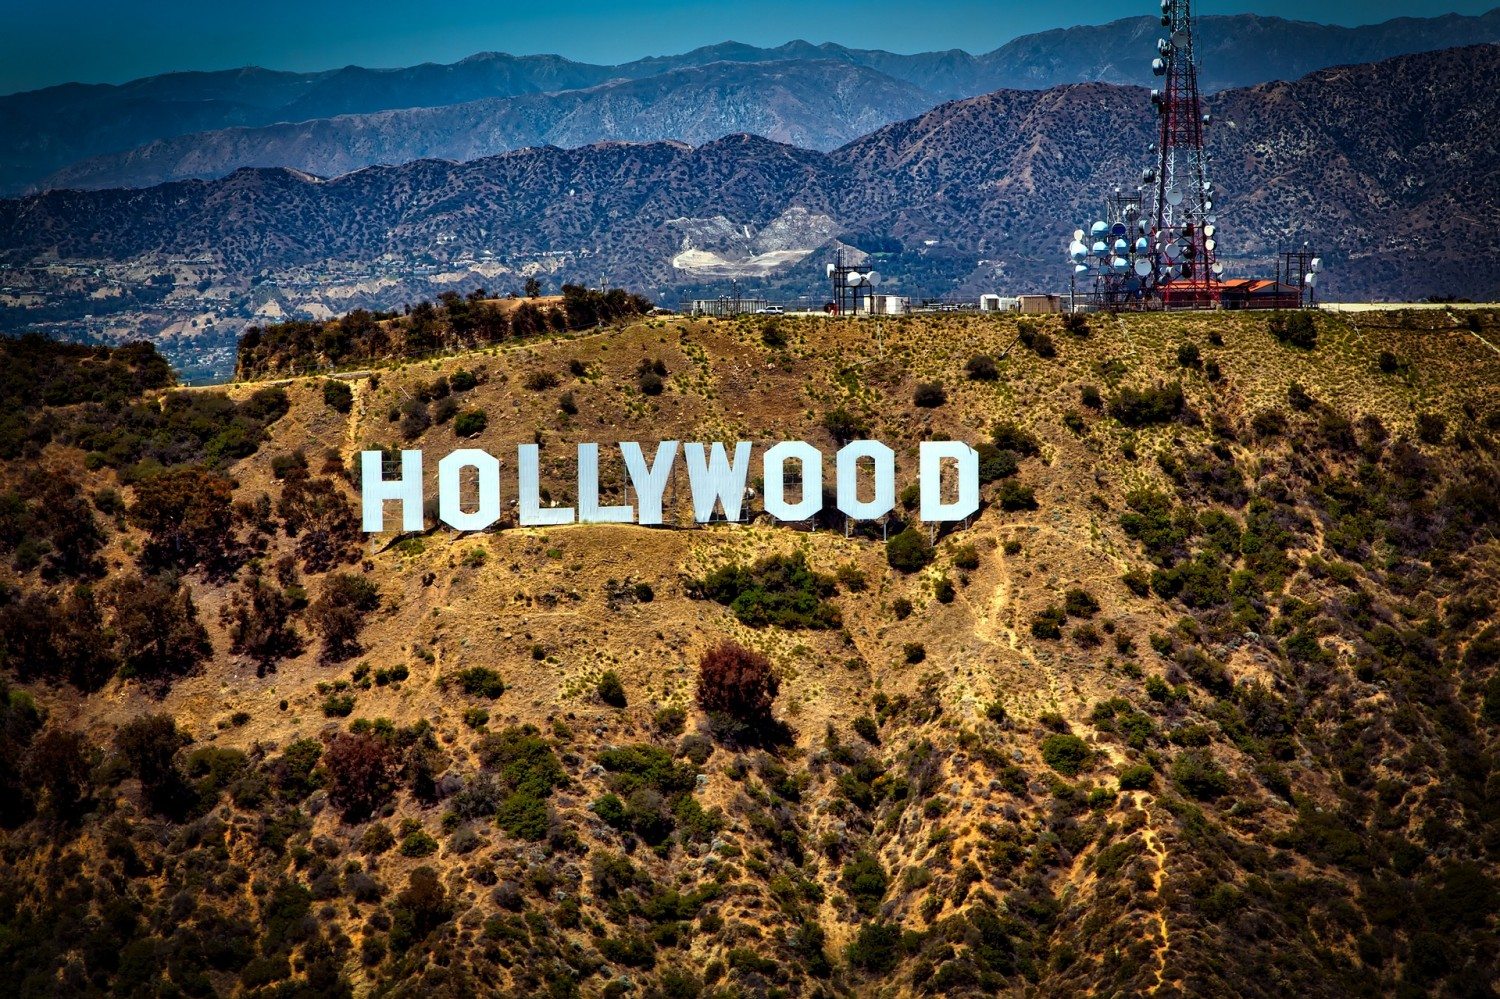 Hollywood Sign Los Angeles - Cool Thing to see